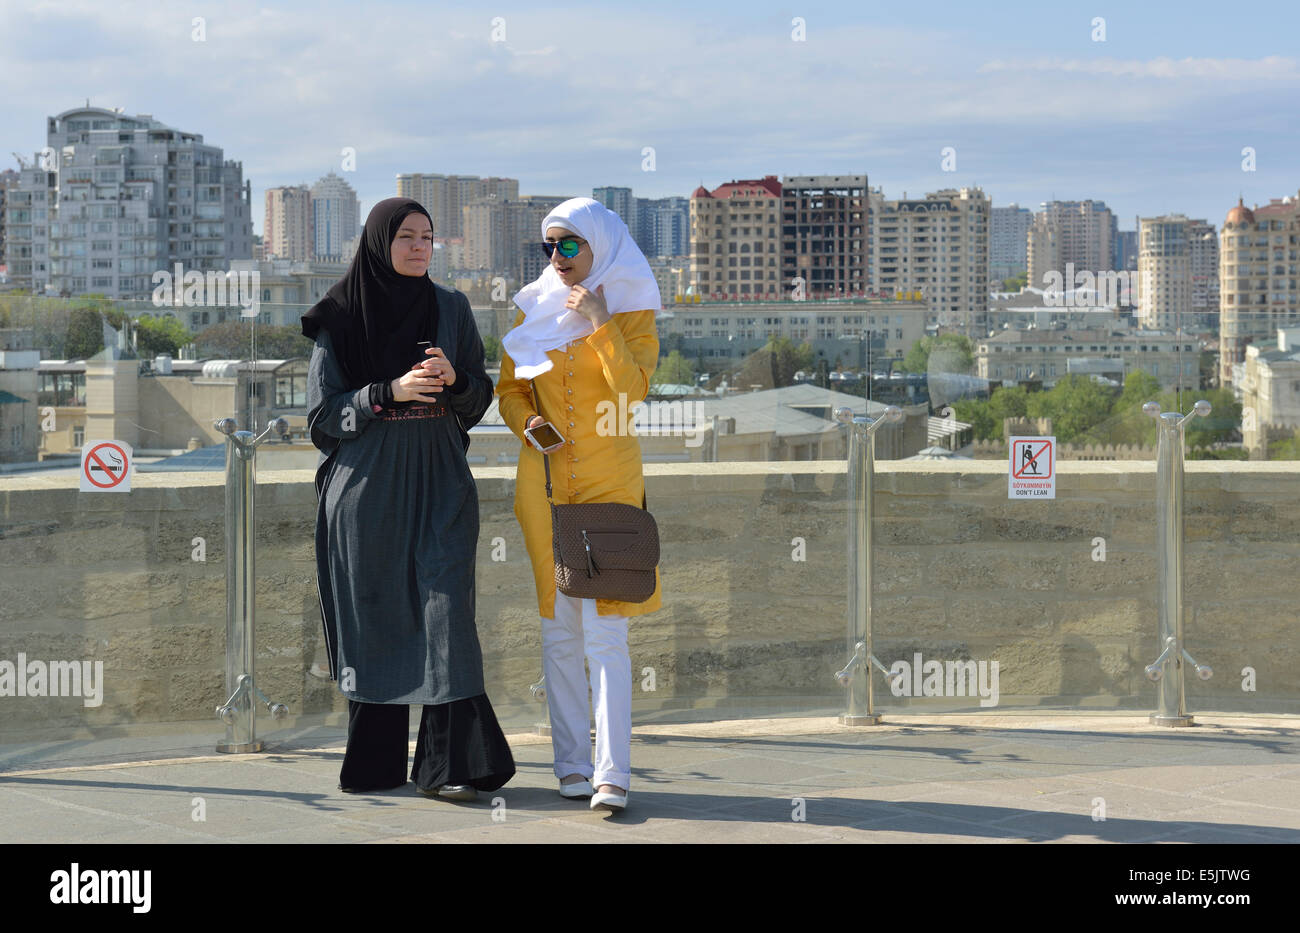 Two women on viewing platform of the Maiden Tower, Old City, Baku, Azerbaijan - Stock Image